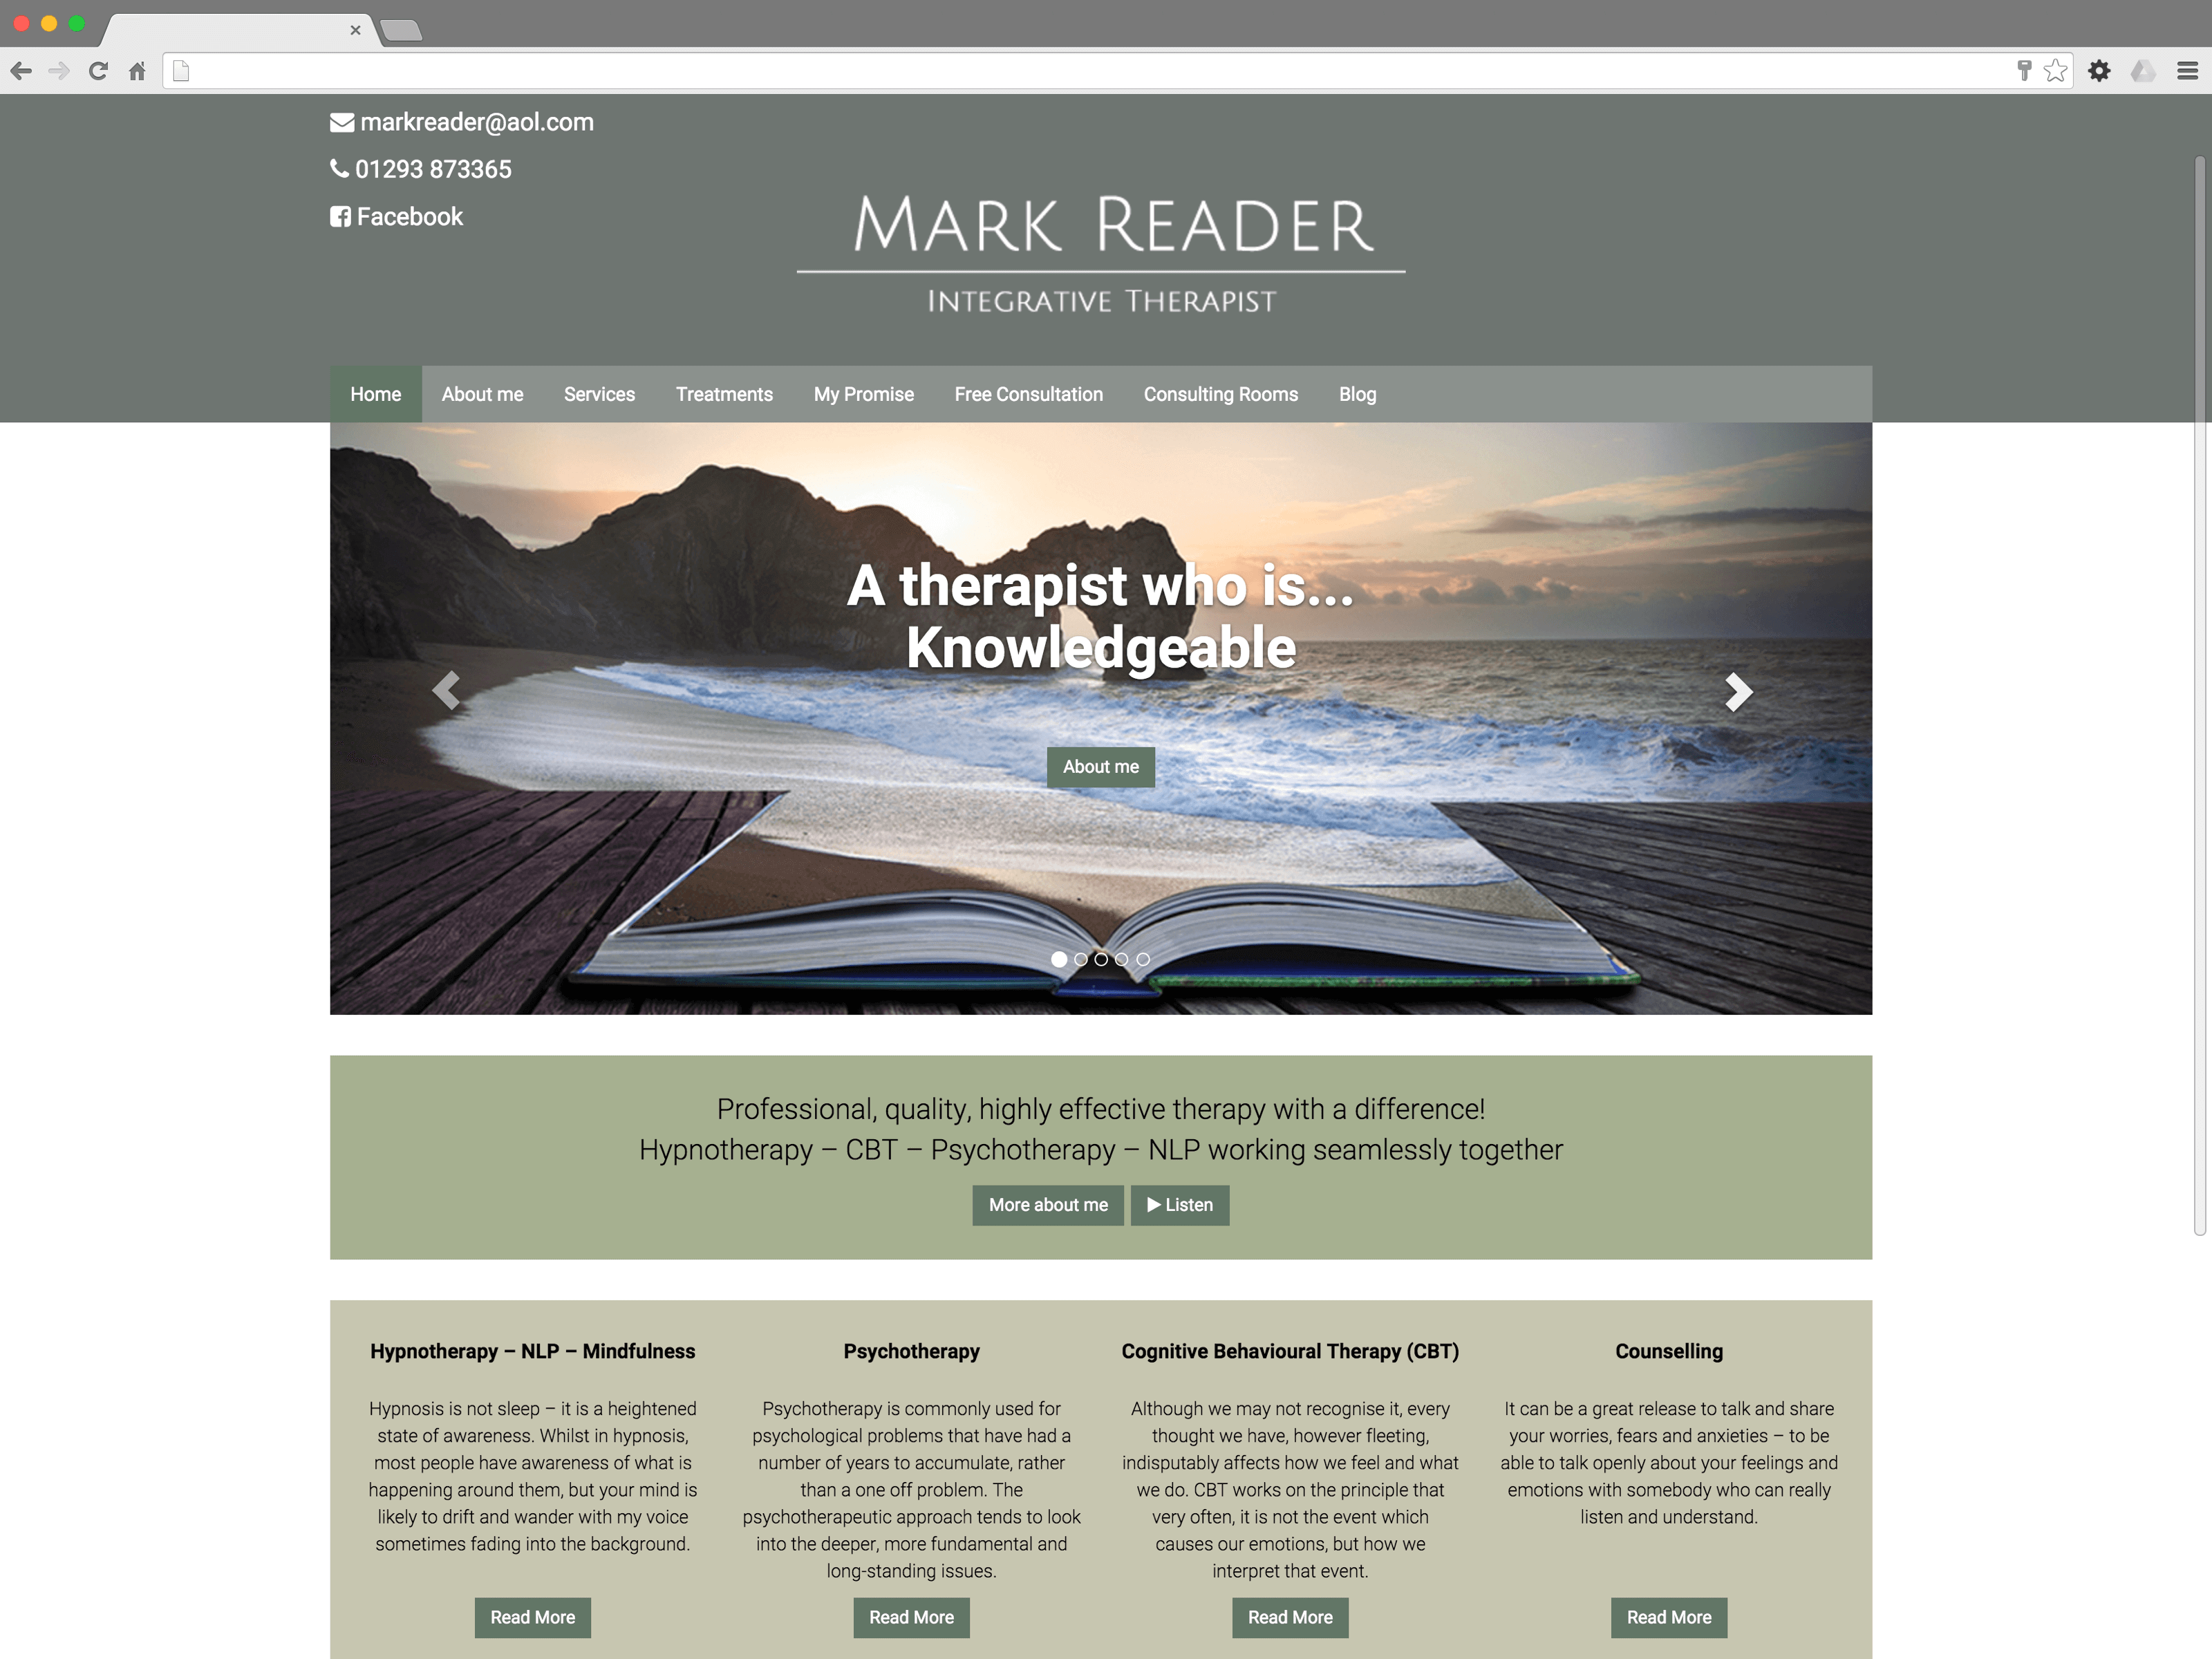 Mark Reader Integrative Therapist website (Website on desktop)